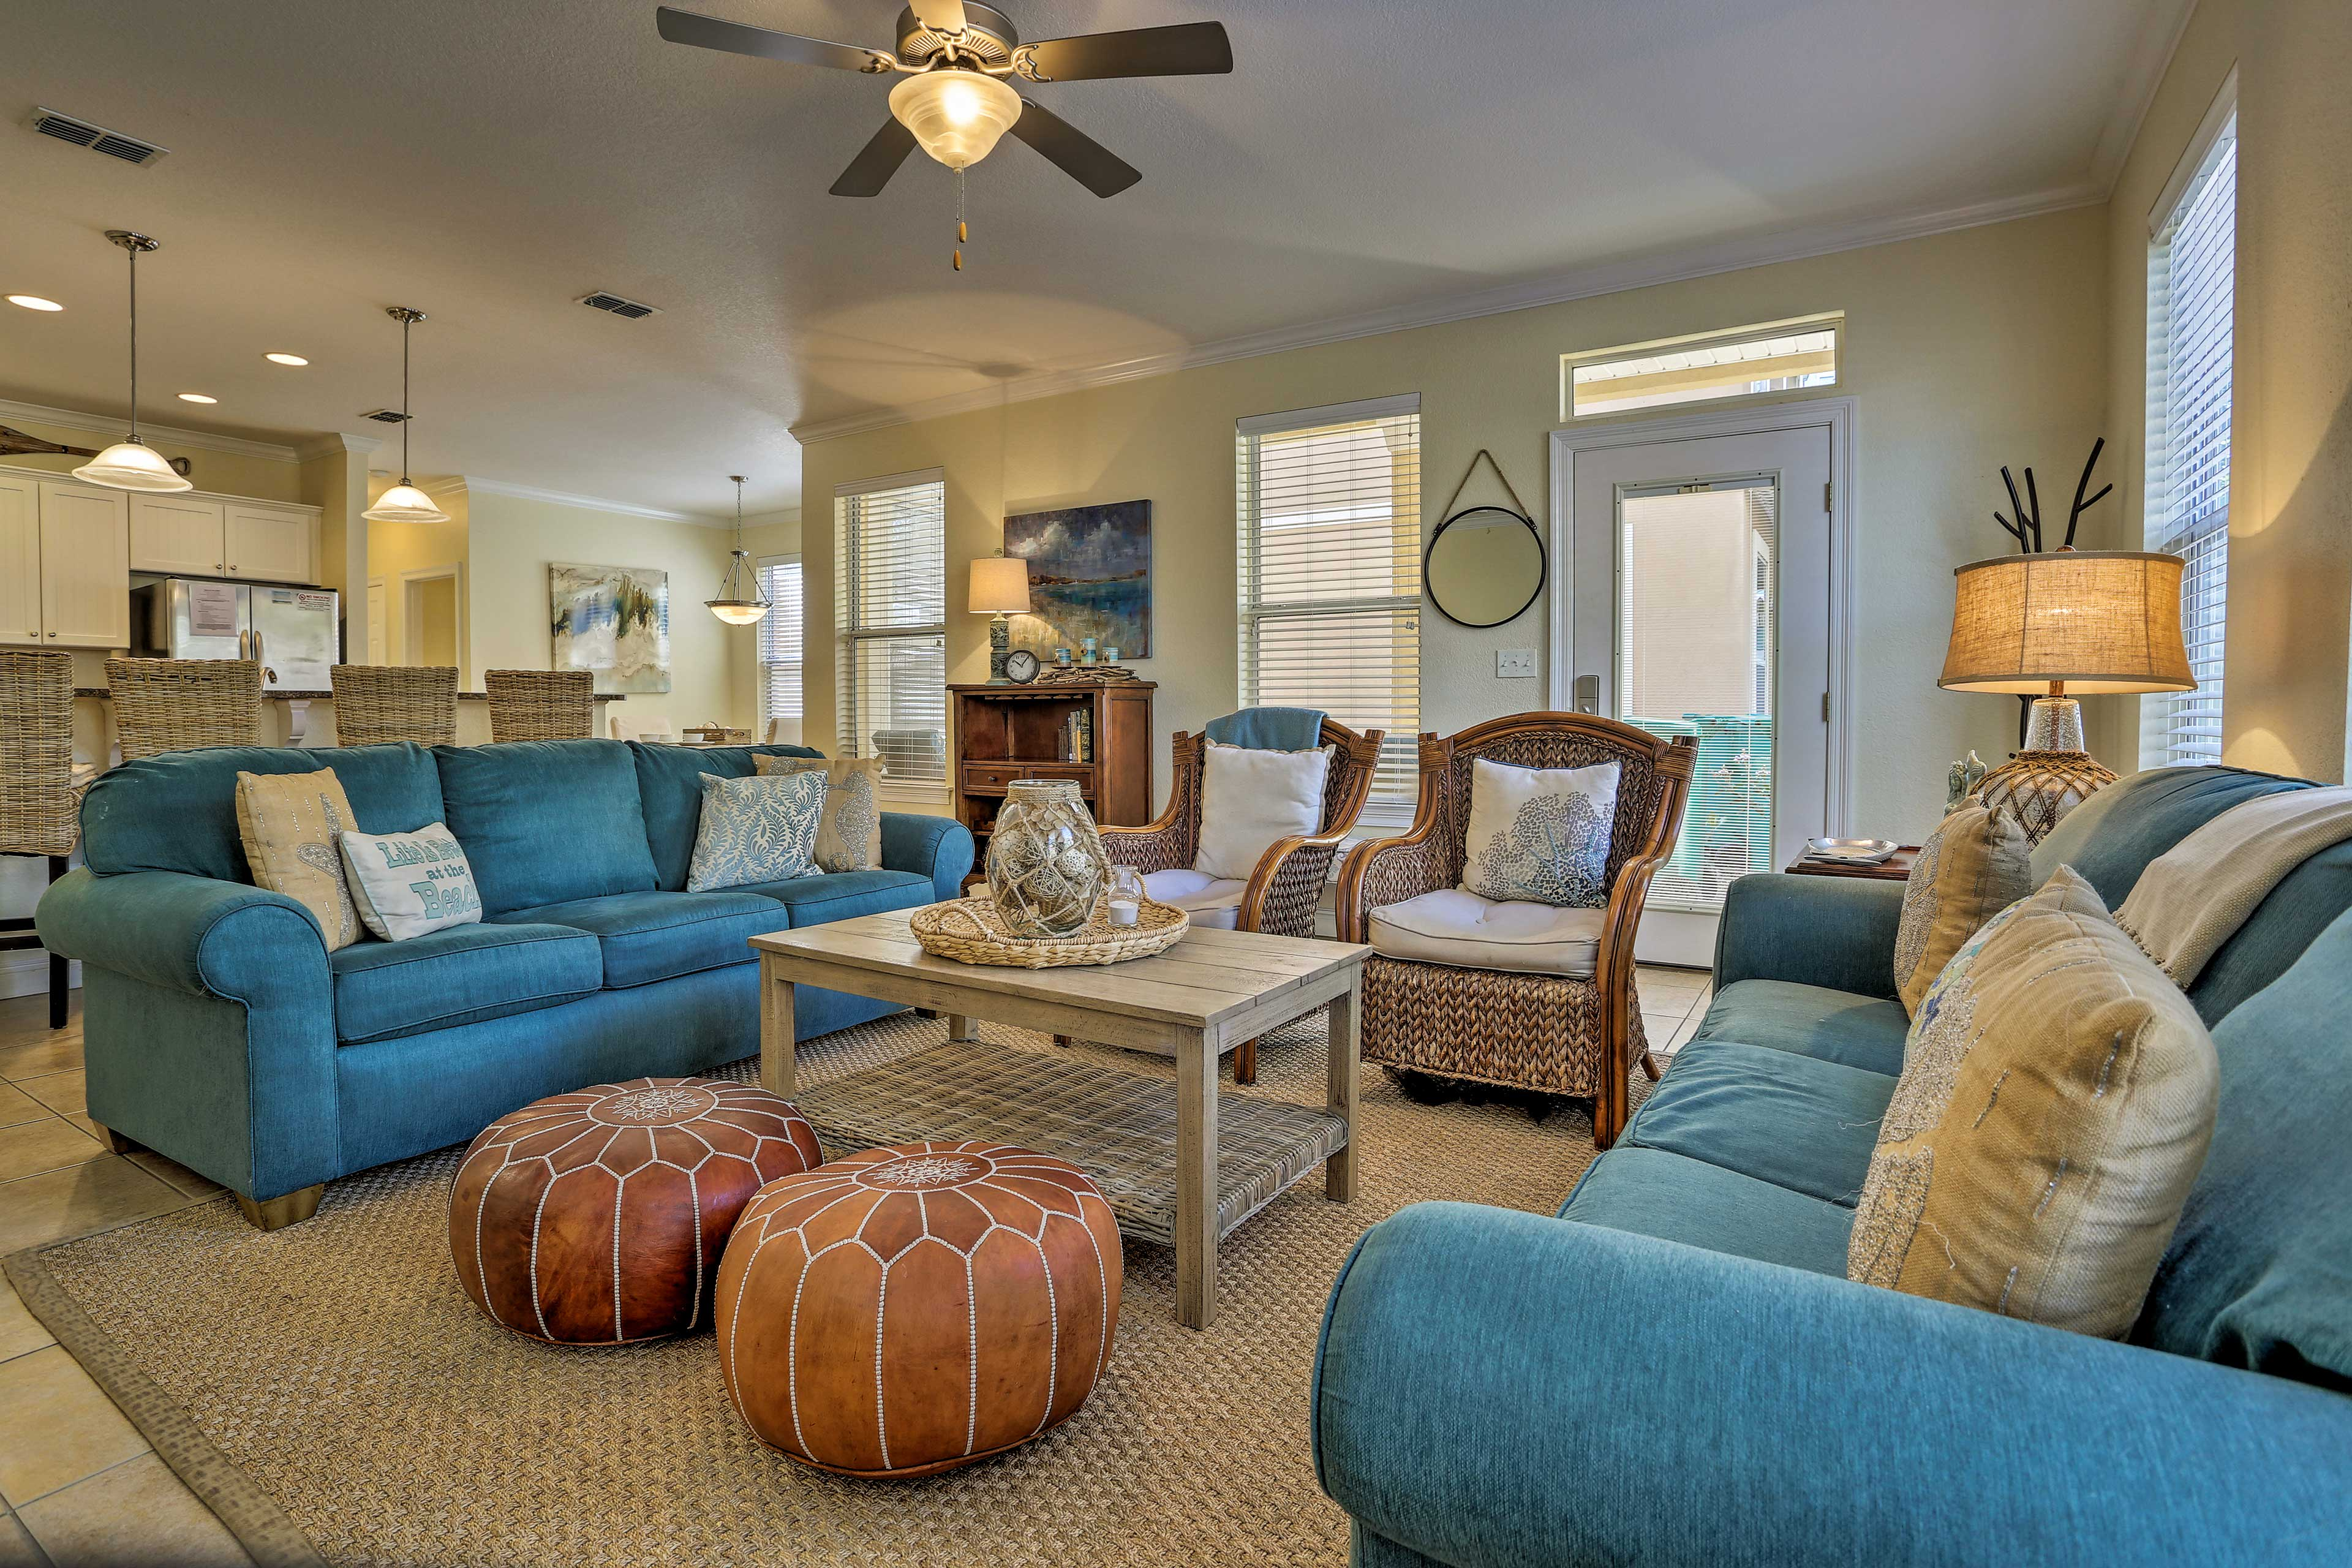 Vibrant colors and coastal decor adorn the interior of this home.